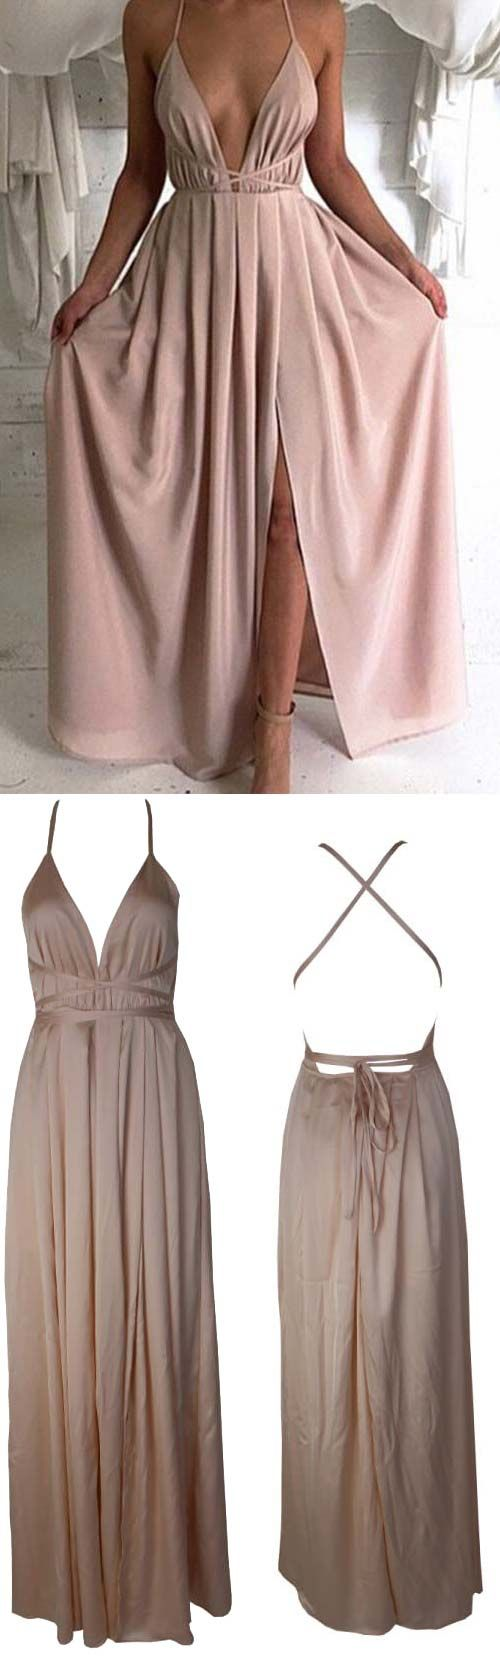 Sexy Low Cut Prom Party Dresses, Criss Cross Prom Dresses, Split Front Prom…